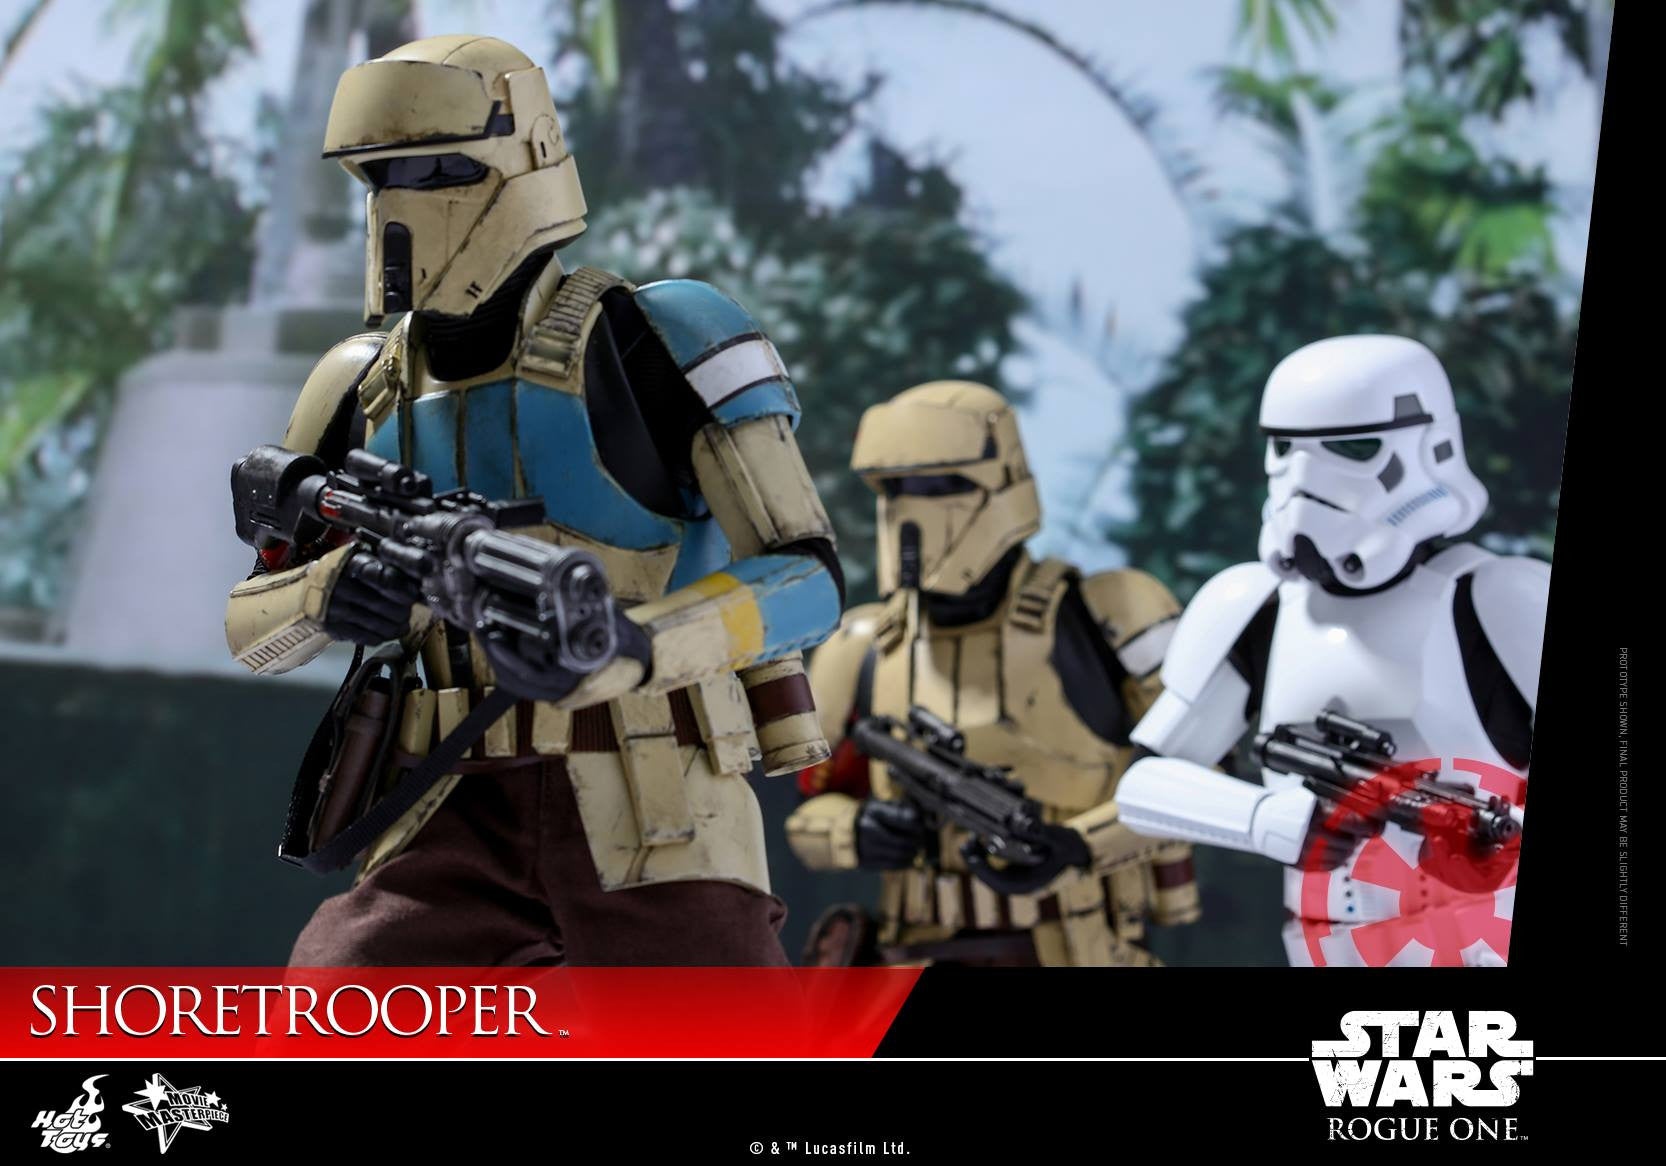 Hot Toys - MMS389 - Rogue One: A Star Wars Story - Shoretrooper - Marvelous Toys - 4